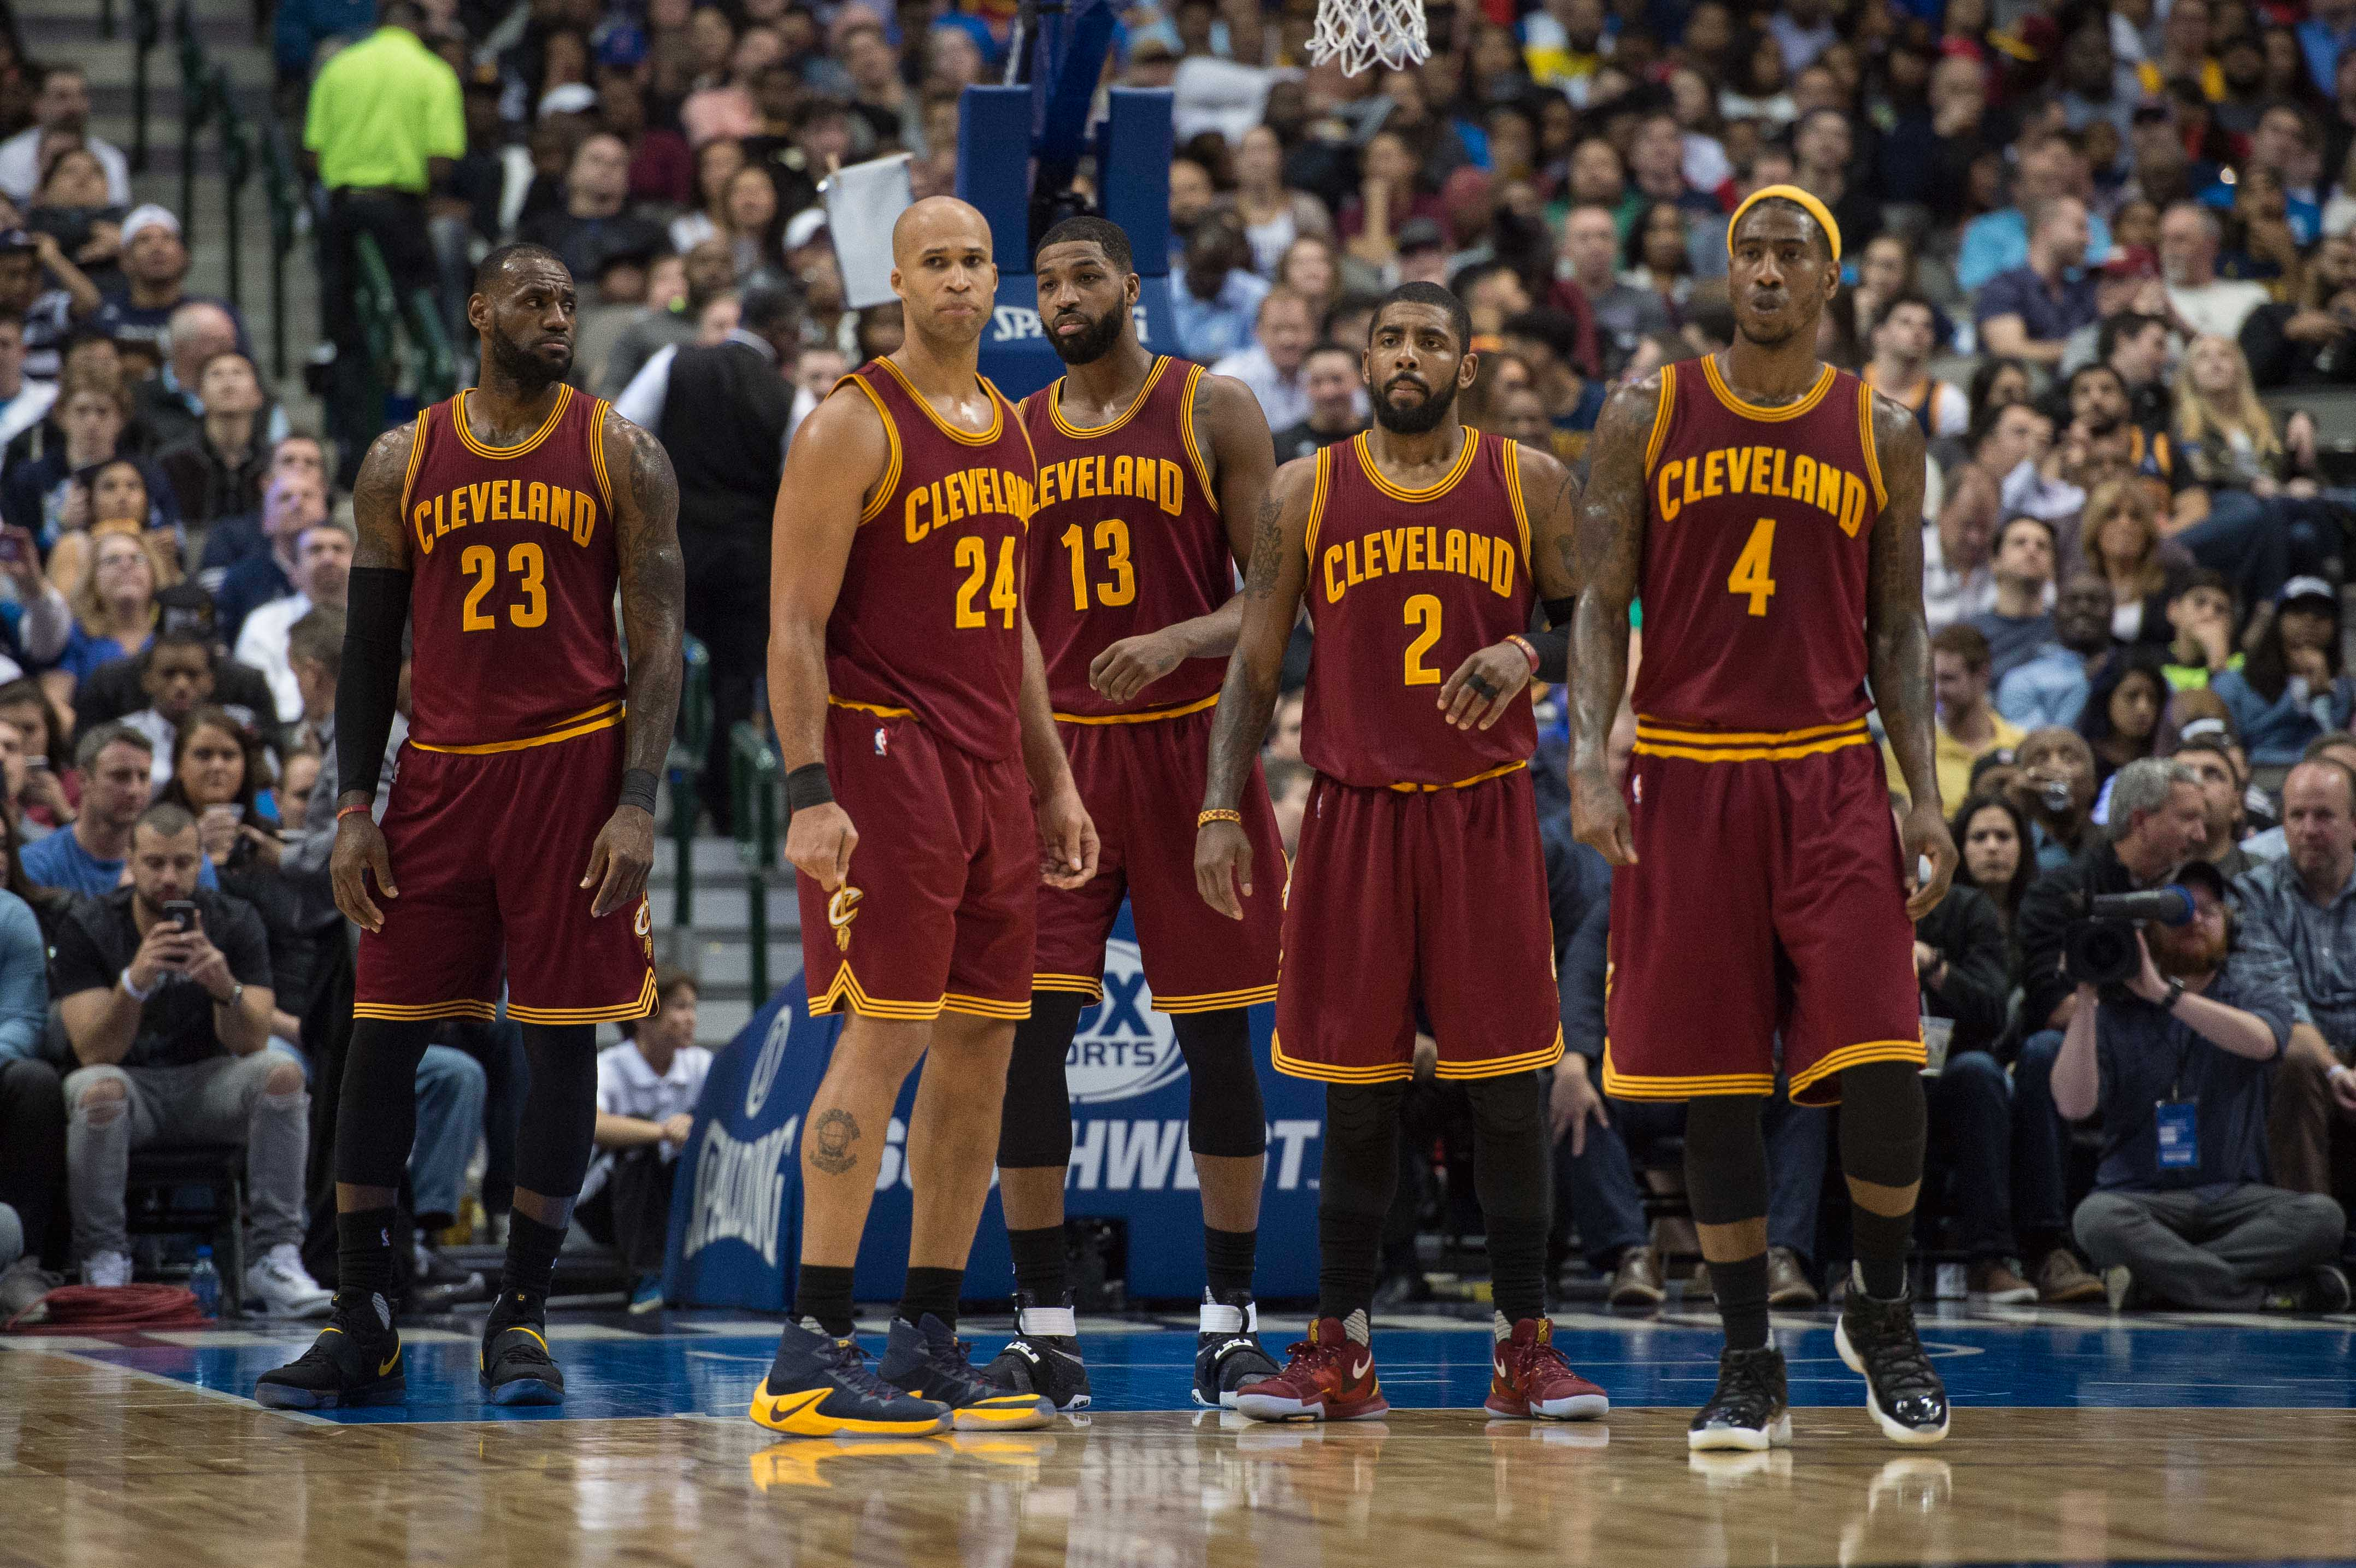 Cavs Roster Salary 2018